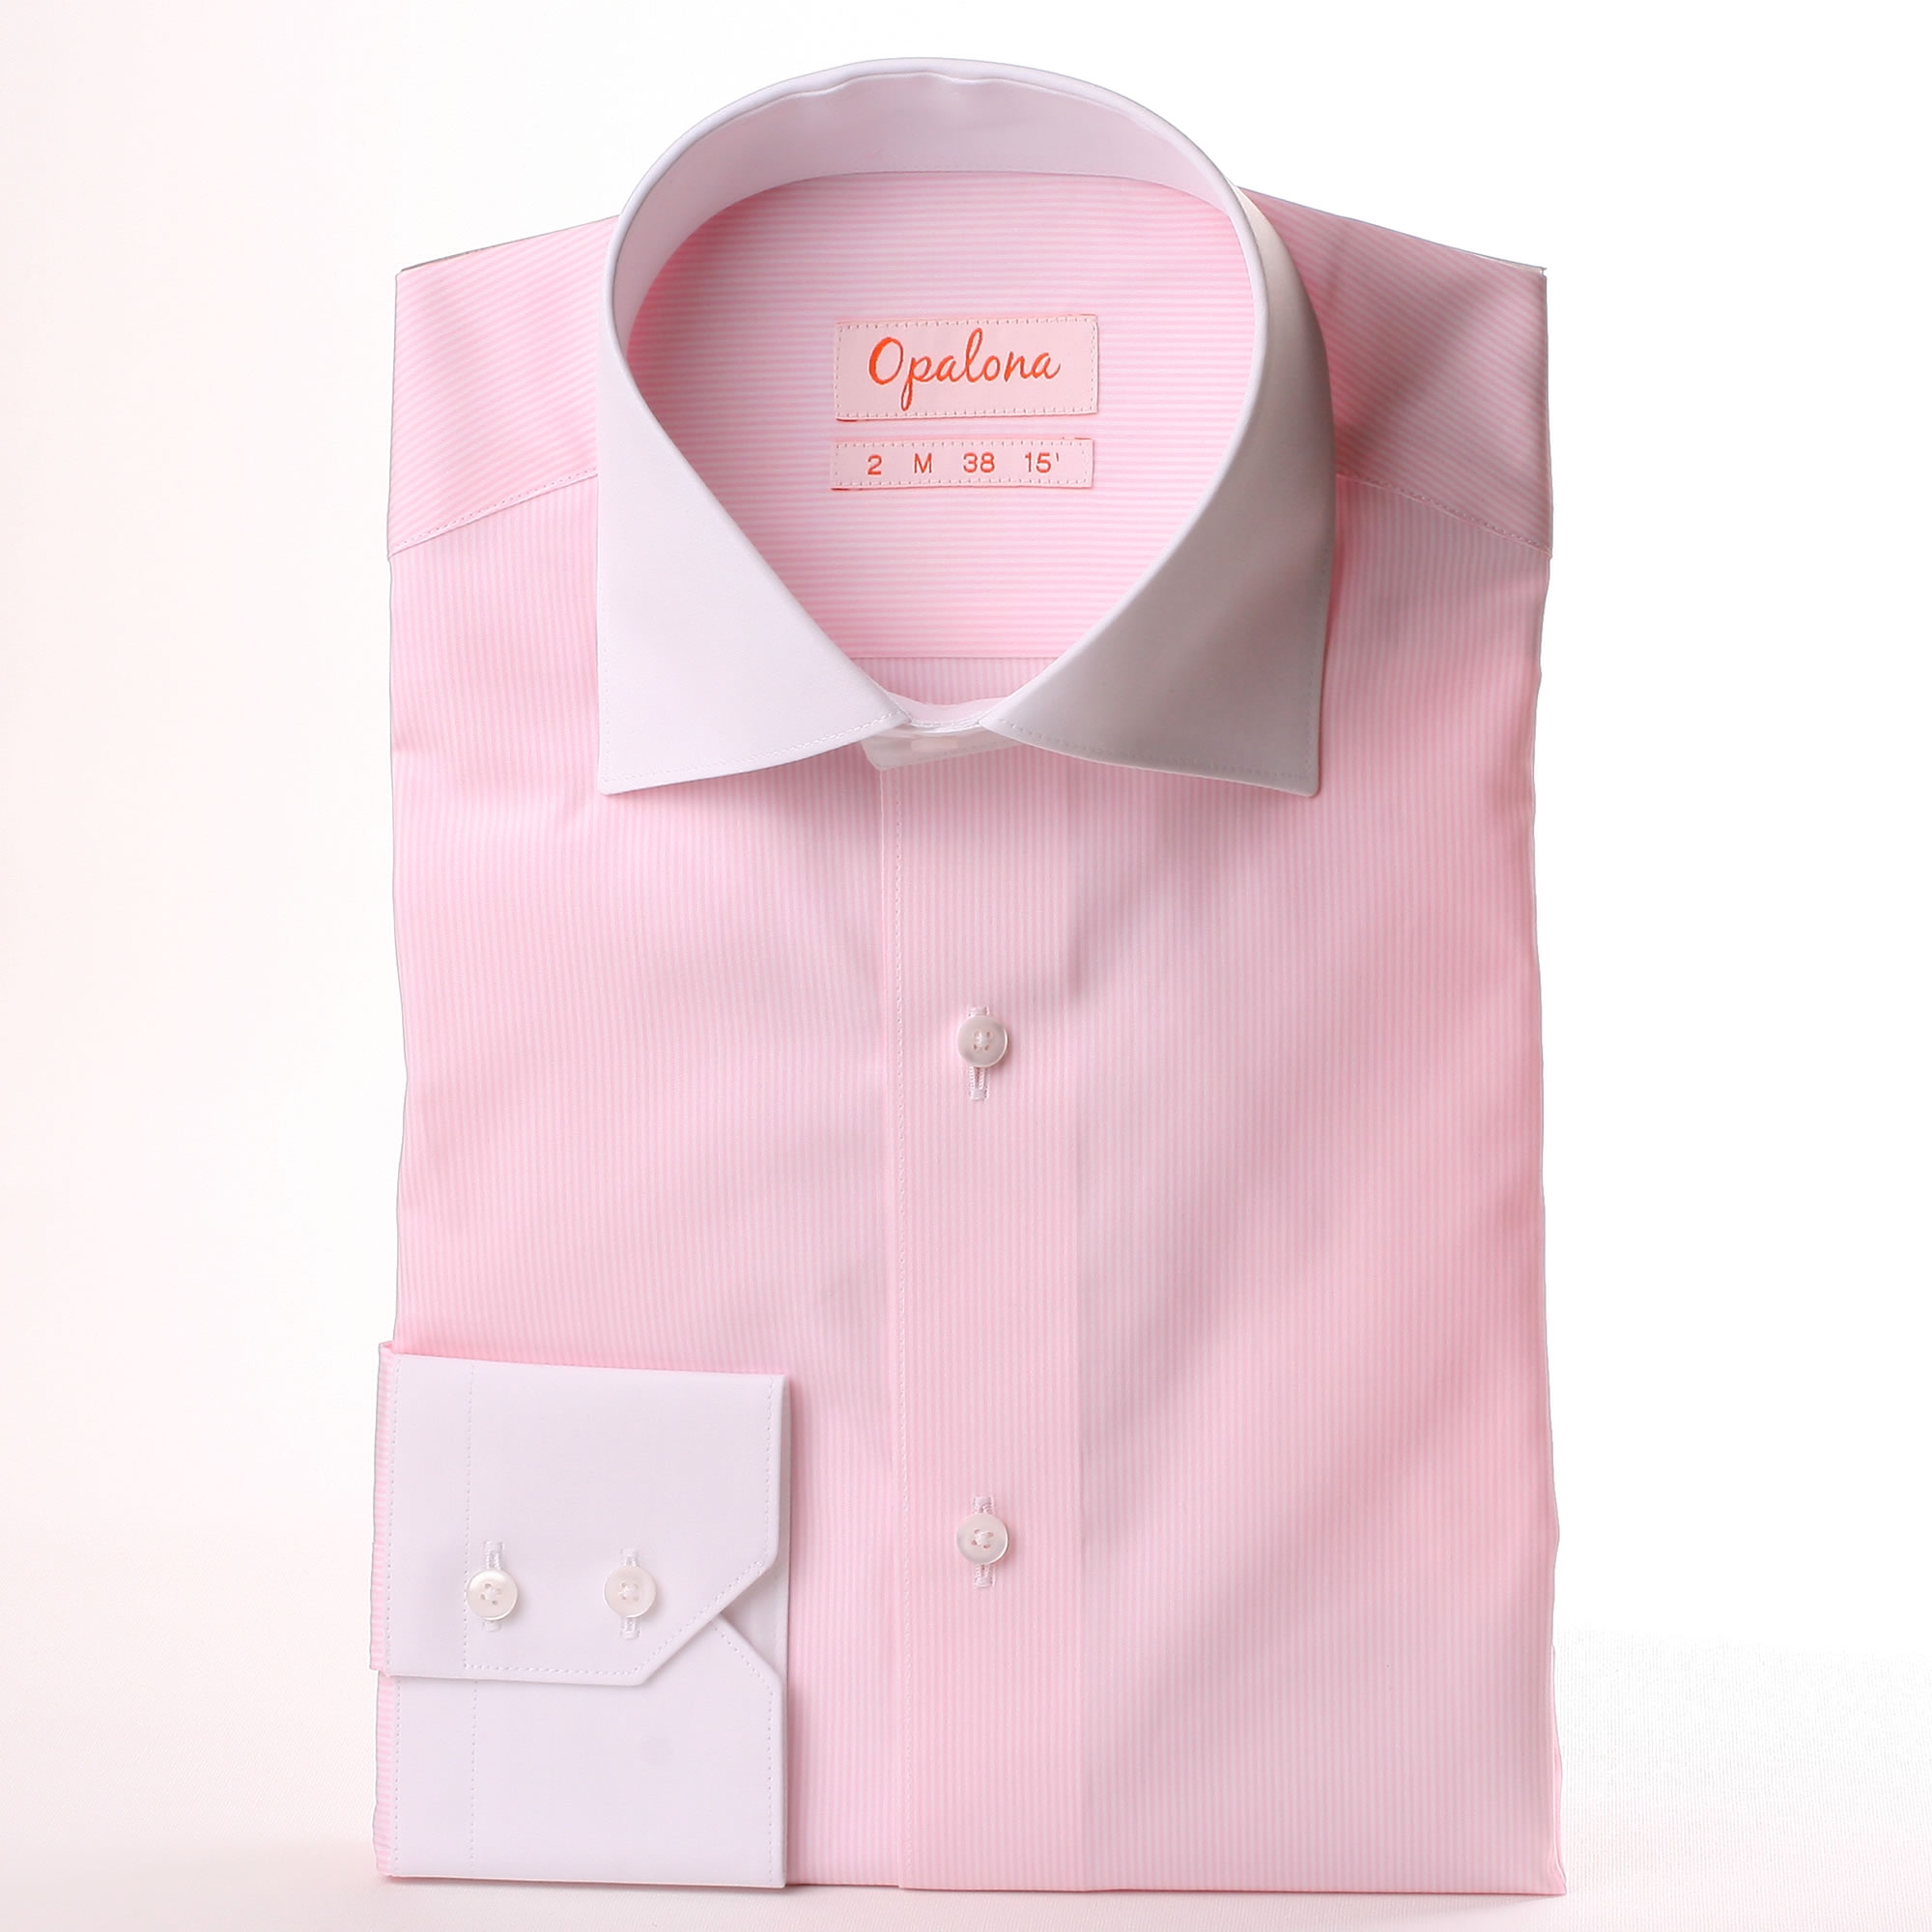 Pink And White Striped Shirt With White Collar And Cuffs